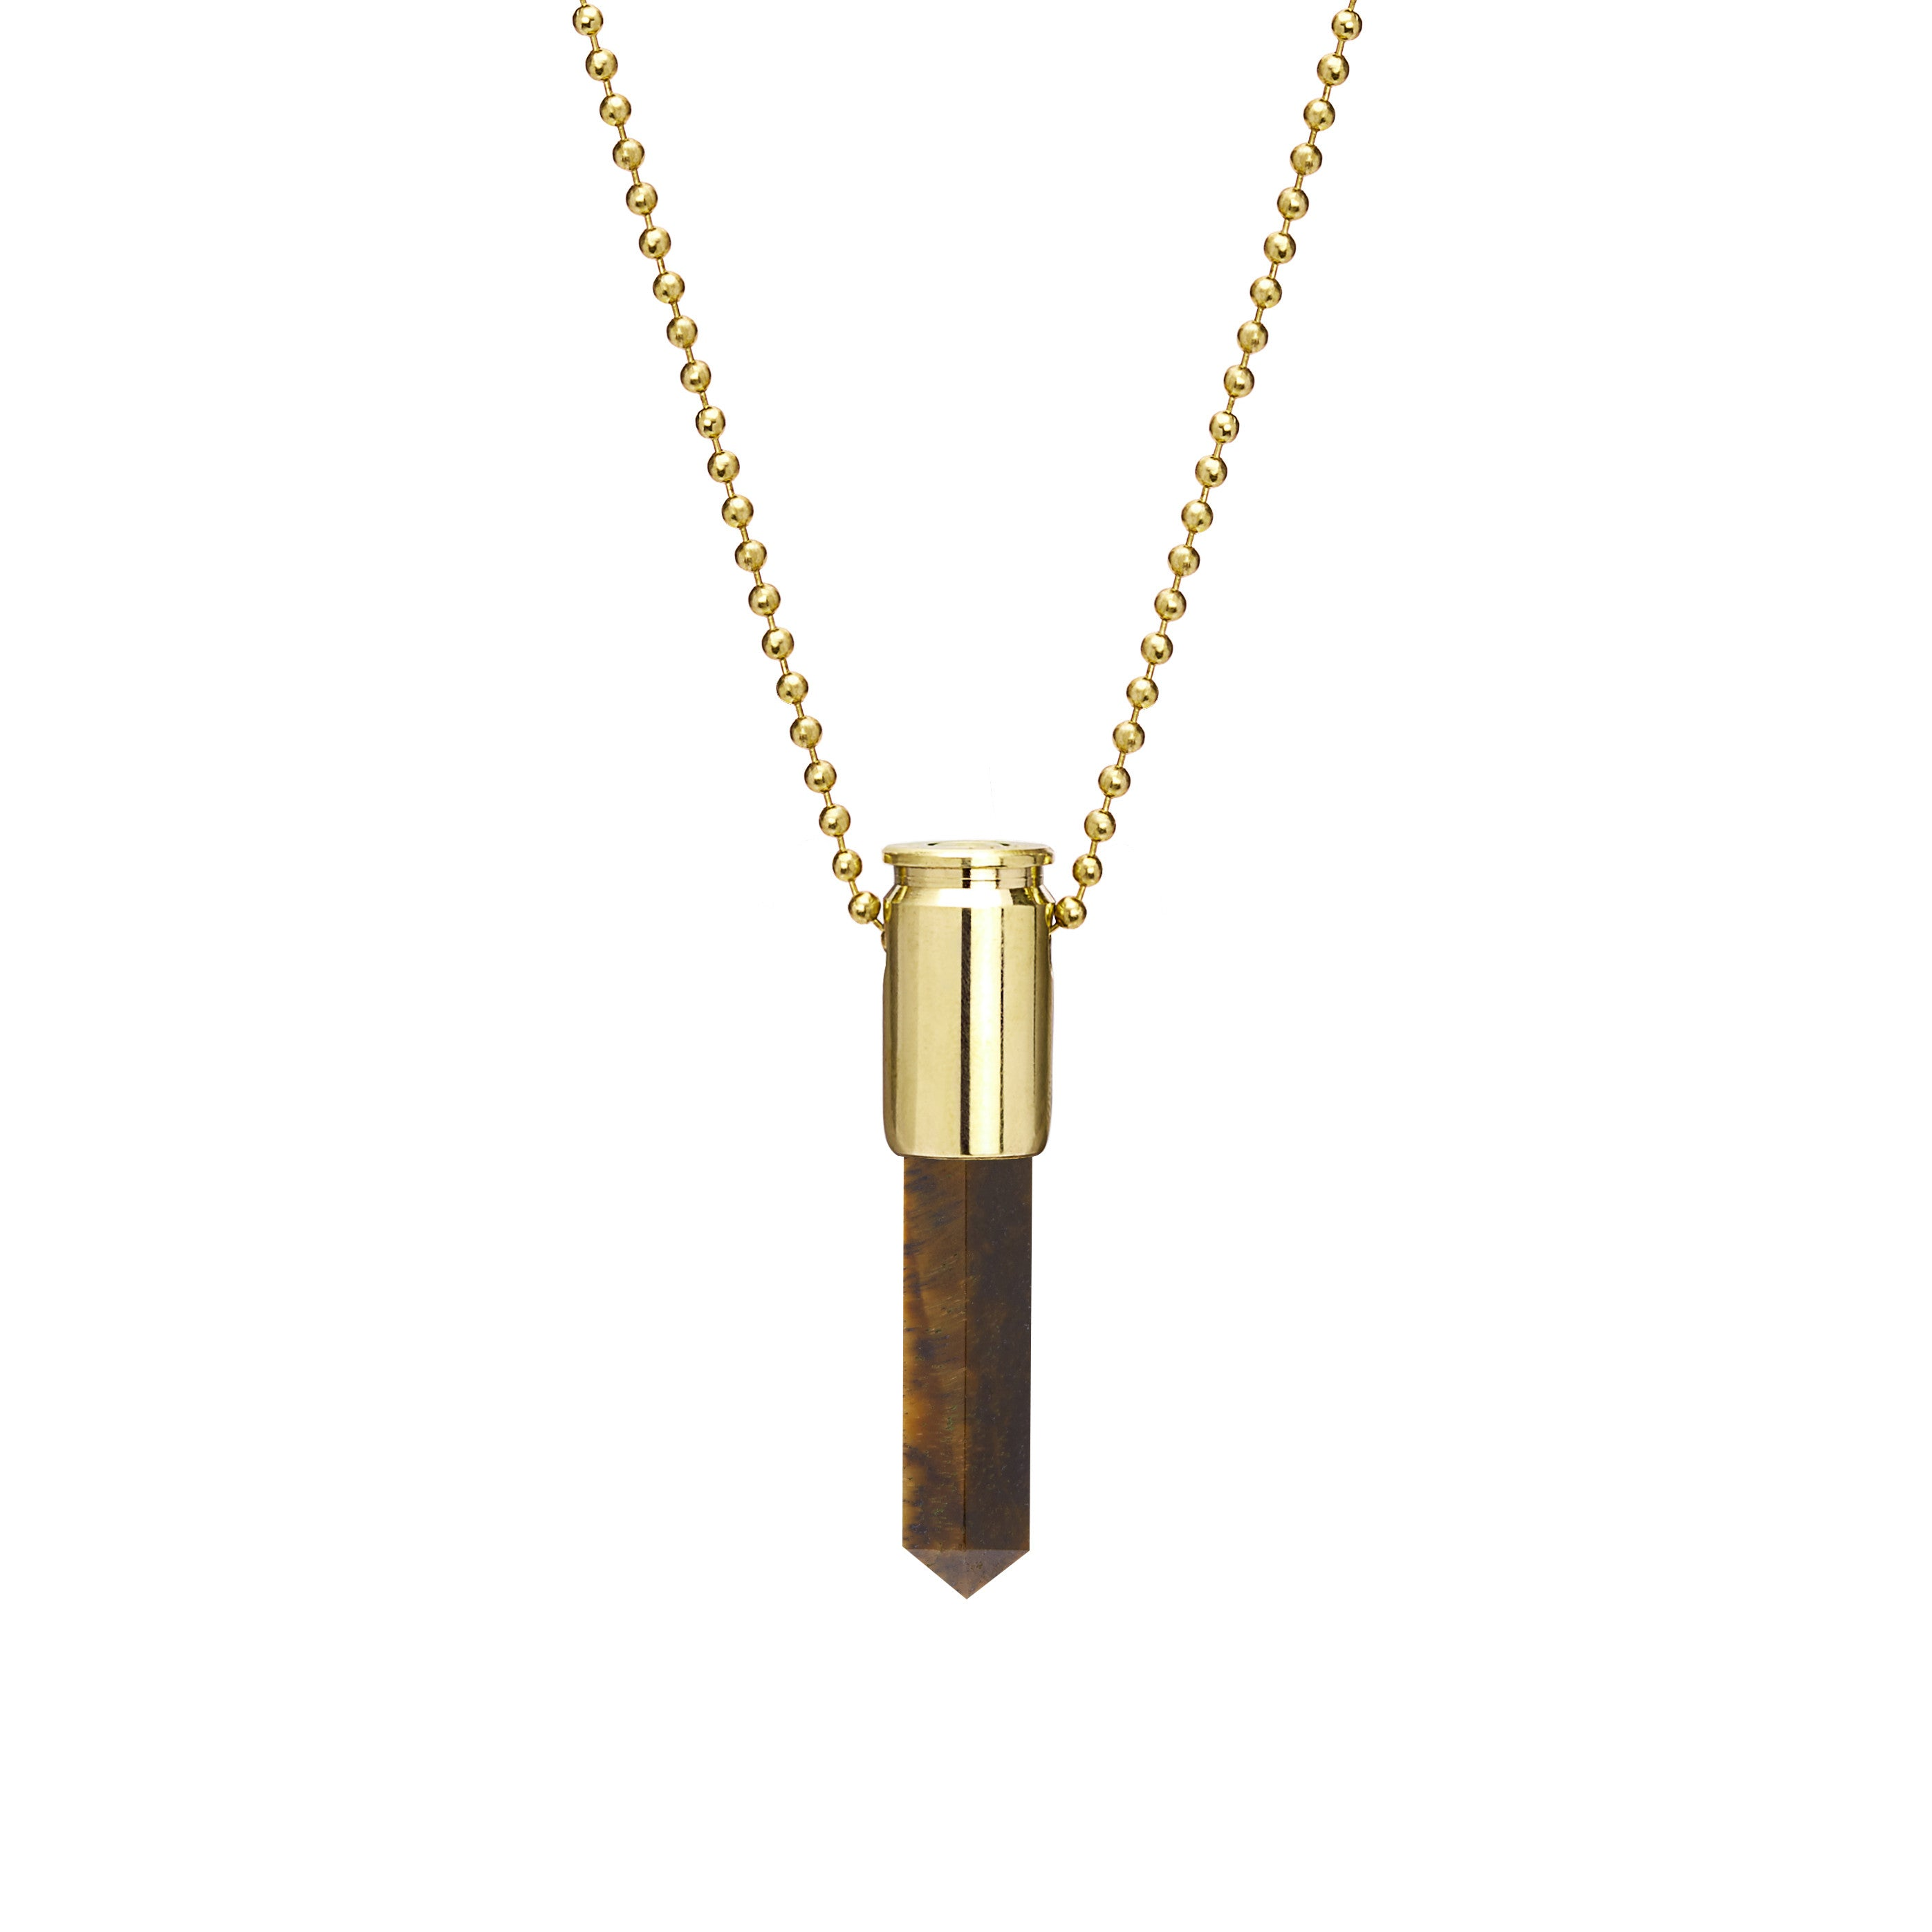 products collections garnet cor collection best sellers pendant necklace bullet